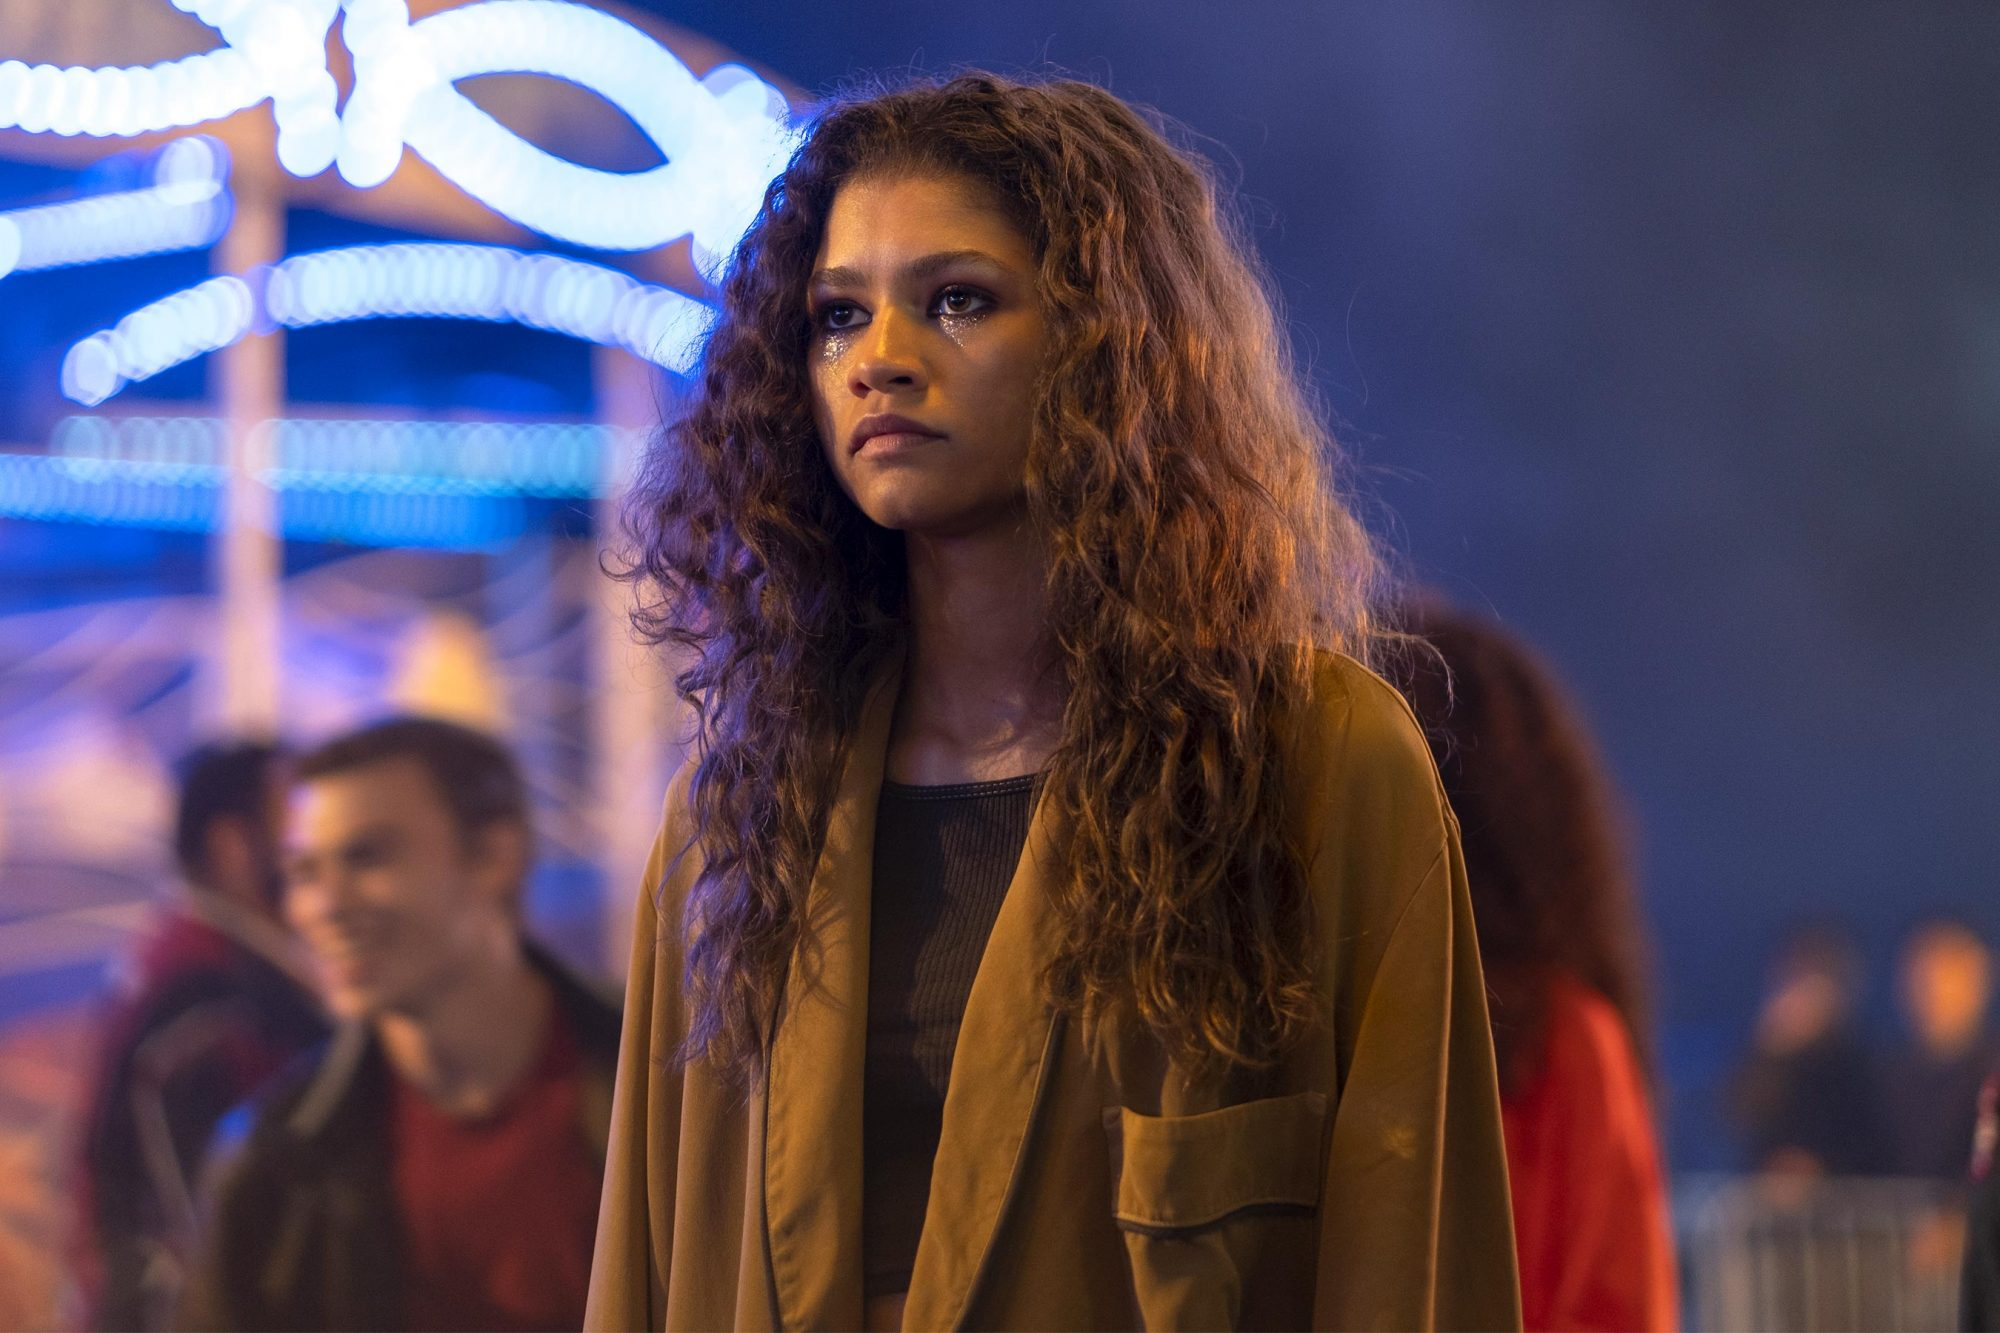 Euphoria Season 1, episode 4 (debut 7/7/19): Zendaya. photo: Eddy Chen/HBO